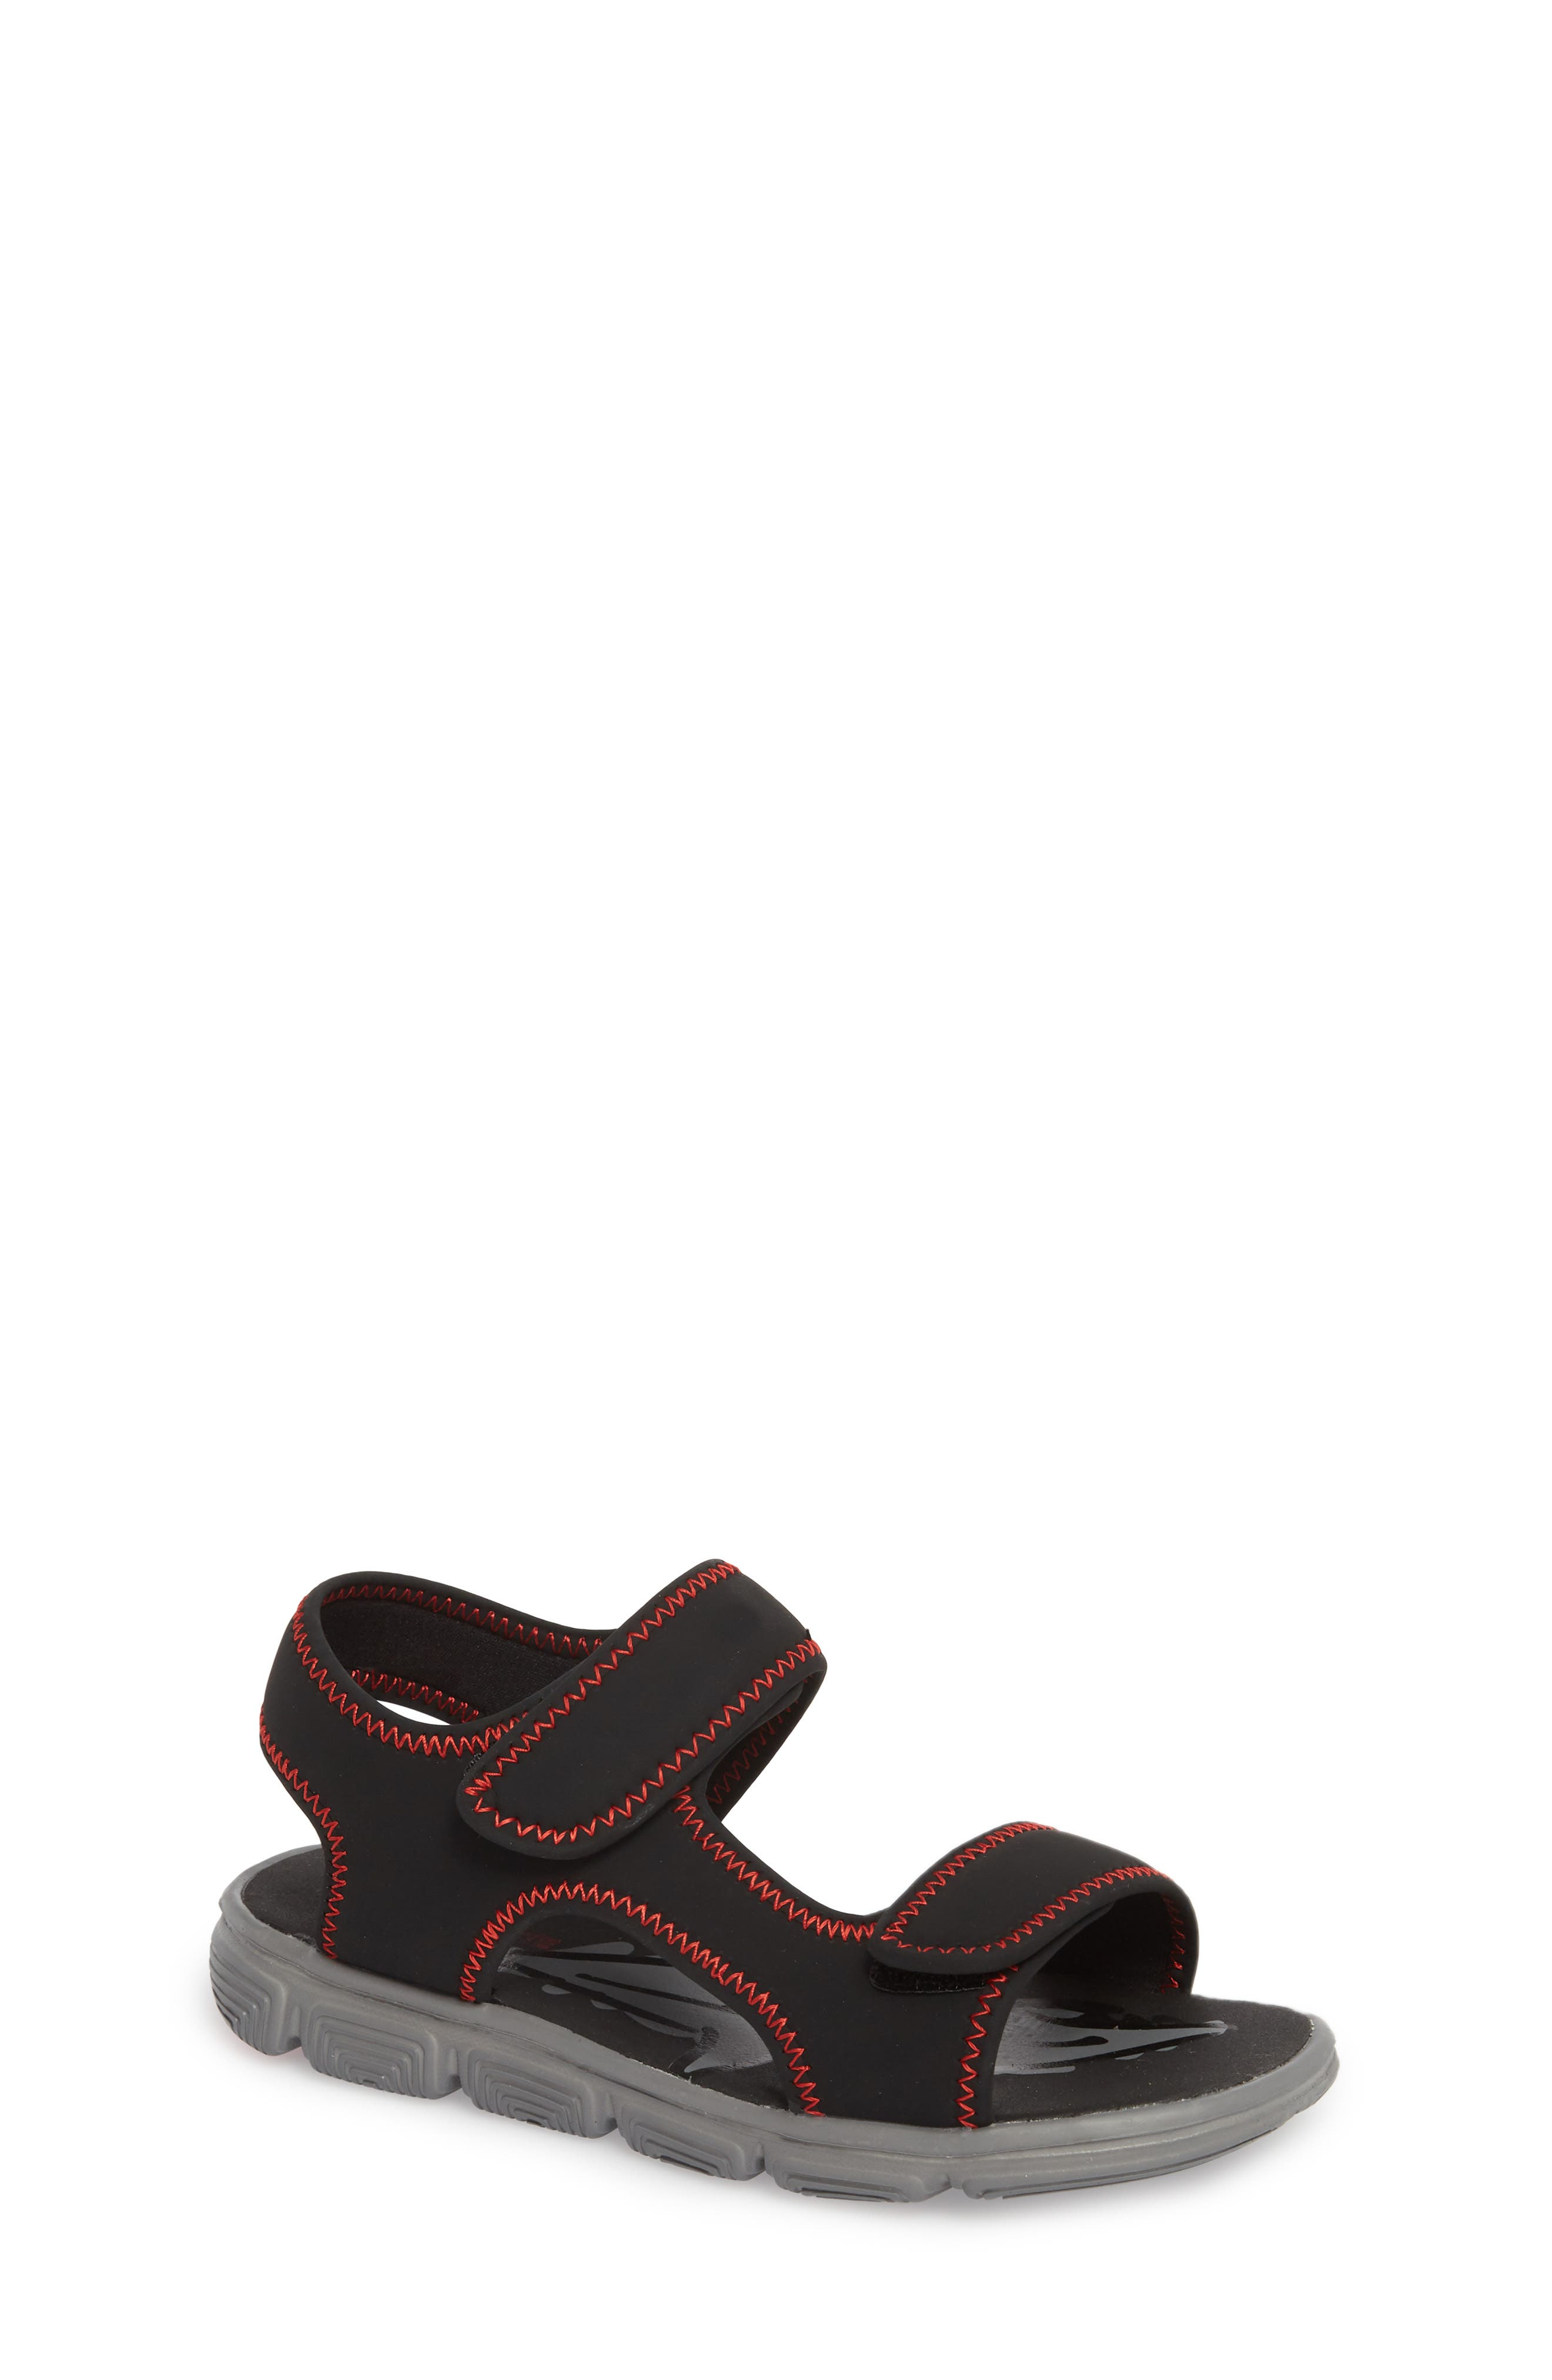 Tucker + Tate Bodie Water Resistant Sport Sandal (Toddler, Little Kid & Big Kid)